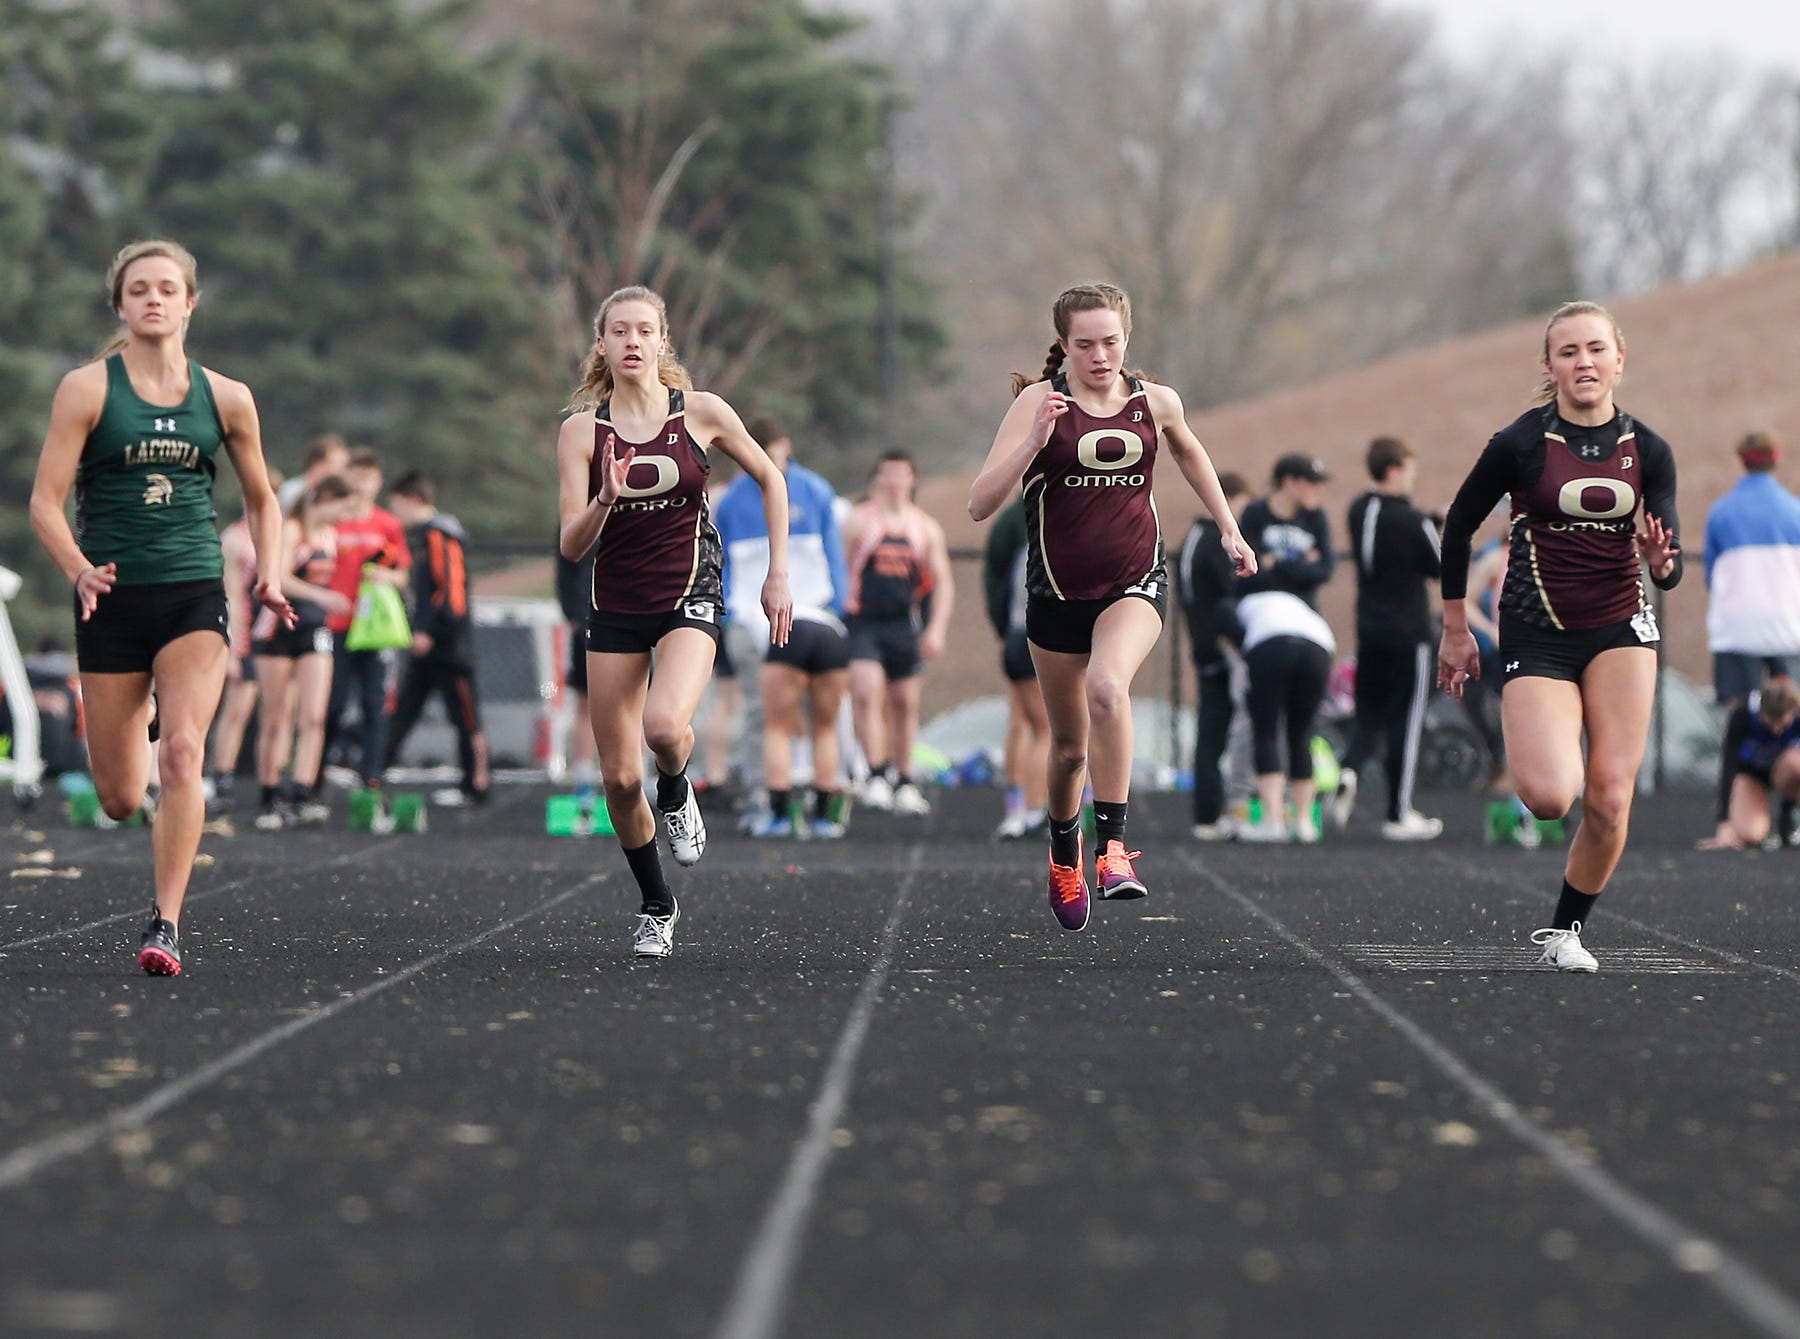 Laconia High School's Taylor VandeBerg and Omro's Audrey Stotflet, Jenna Huth and Maddie Larsen takes part in the girls 100 meter dash Tuesday, April 16, 2019 at North Fond du Lac High School in North Fond du Lac, Wis. Doug Raflik/USA TODAY NETWORK-Wisconsin